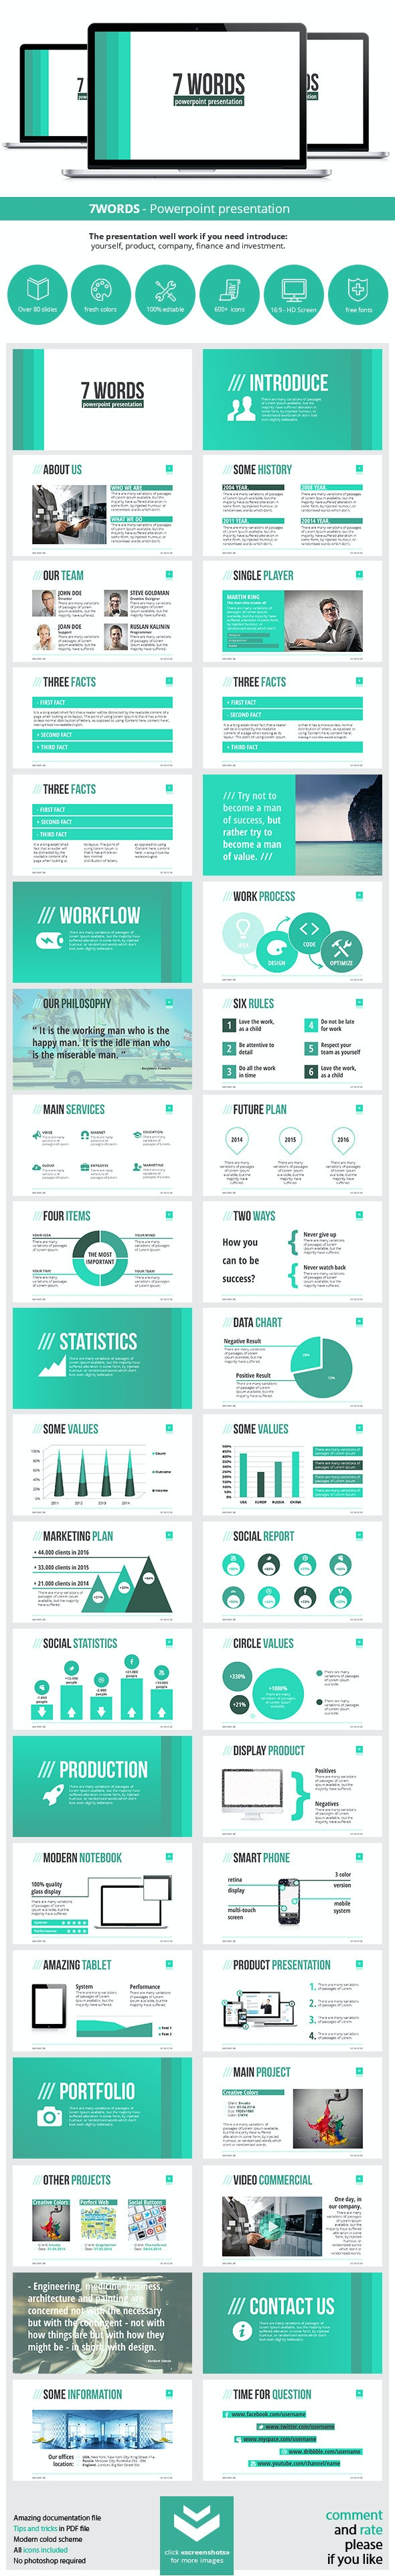 7WORDS Powerpoint Presentation - Business PowerPoint Templates